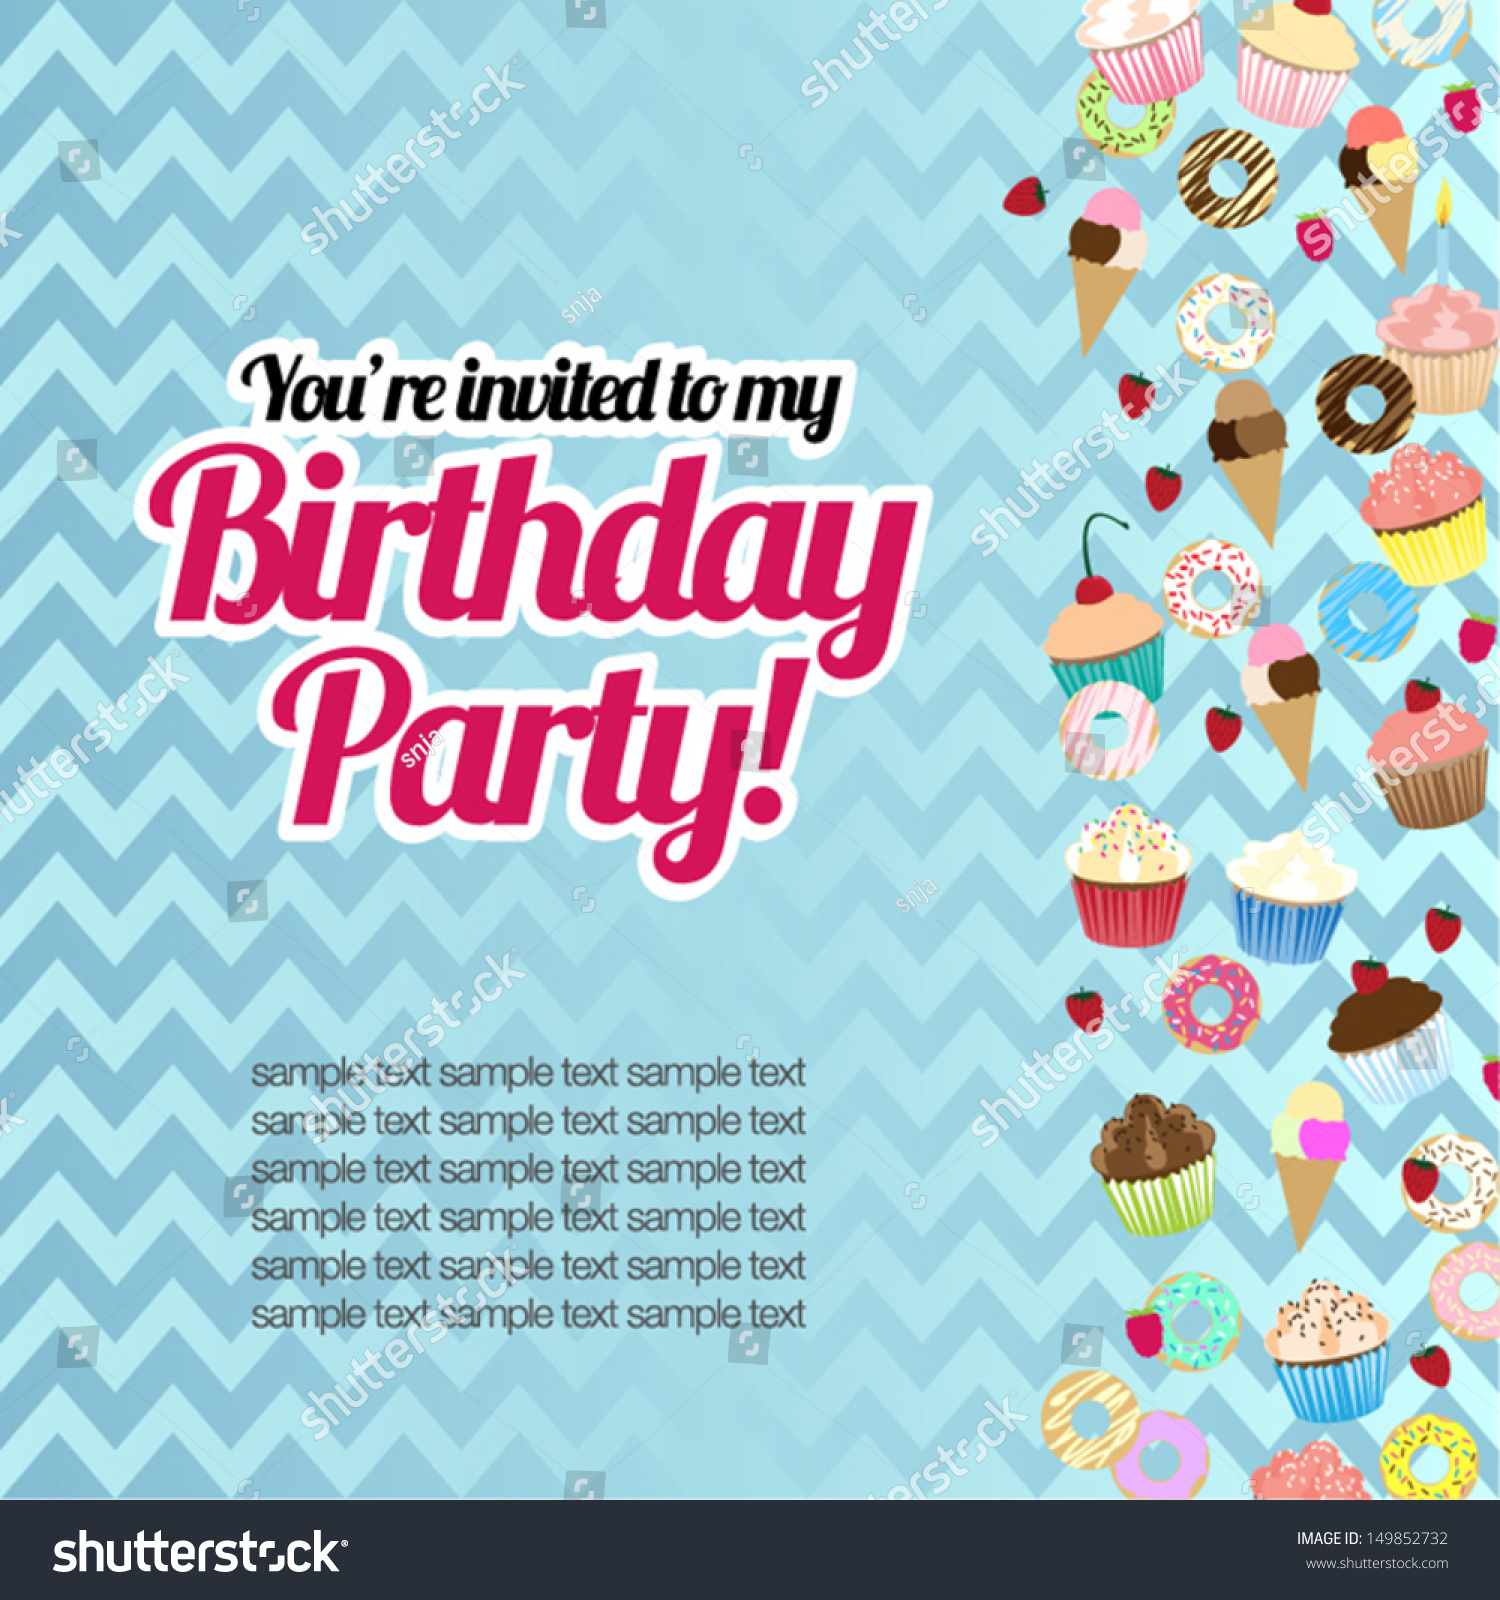 Candy Sweets Birthday Card Party Invitation Stock Vector 149852732 ...